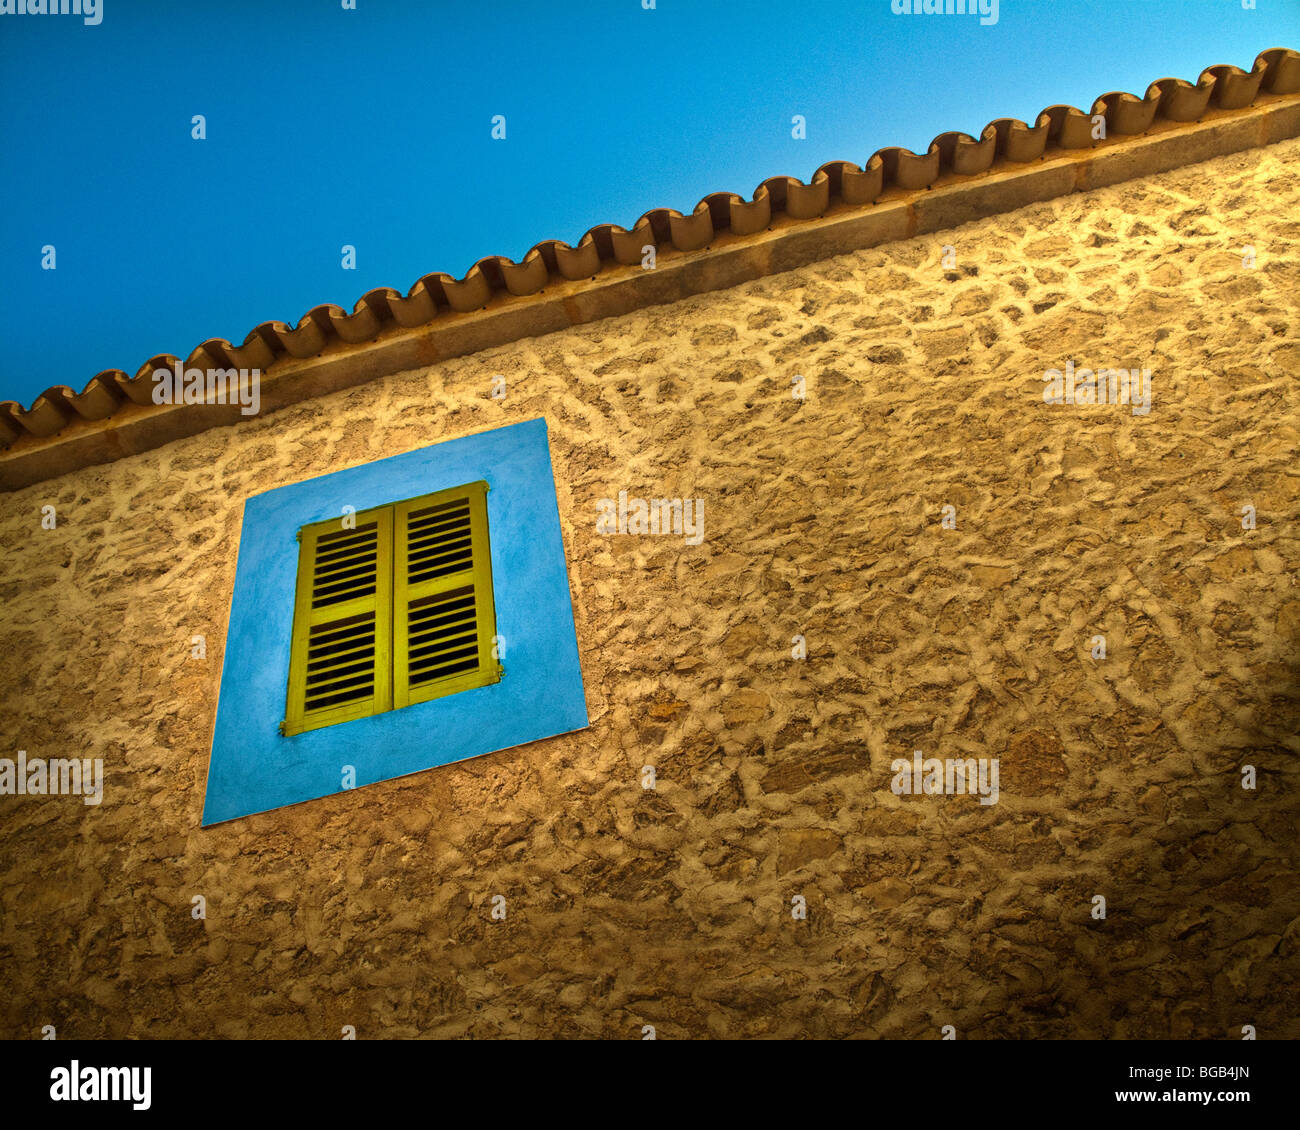 ES - MALLORCA: Typical architectural detail at Arta - Stock Image